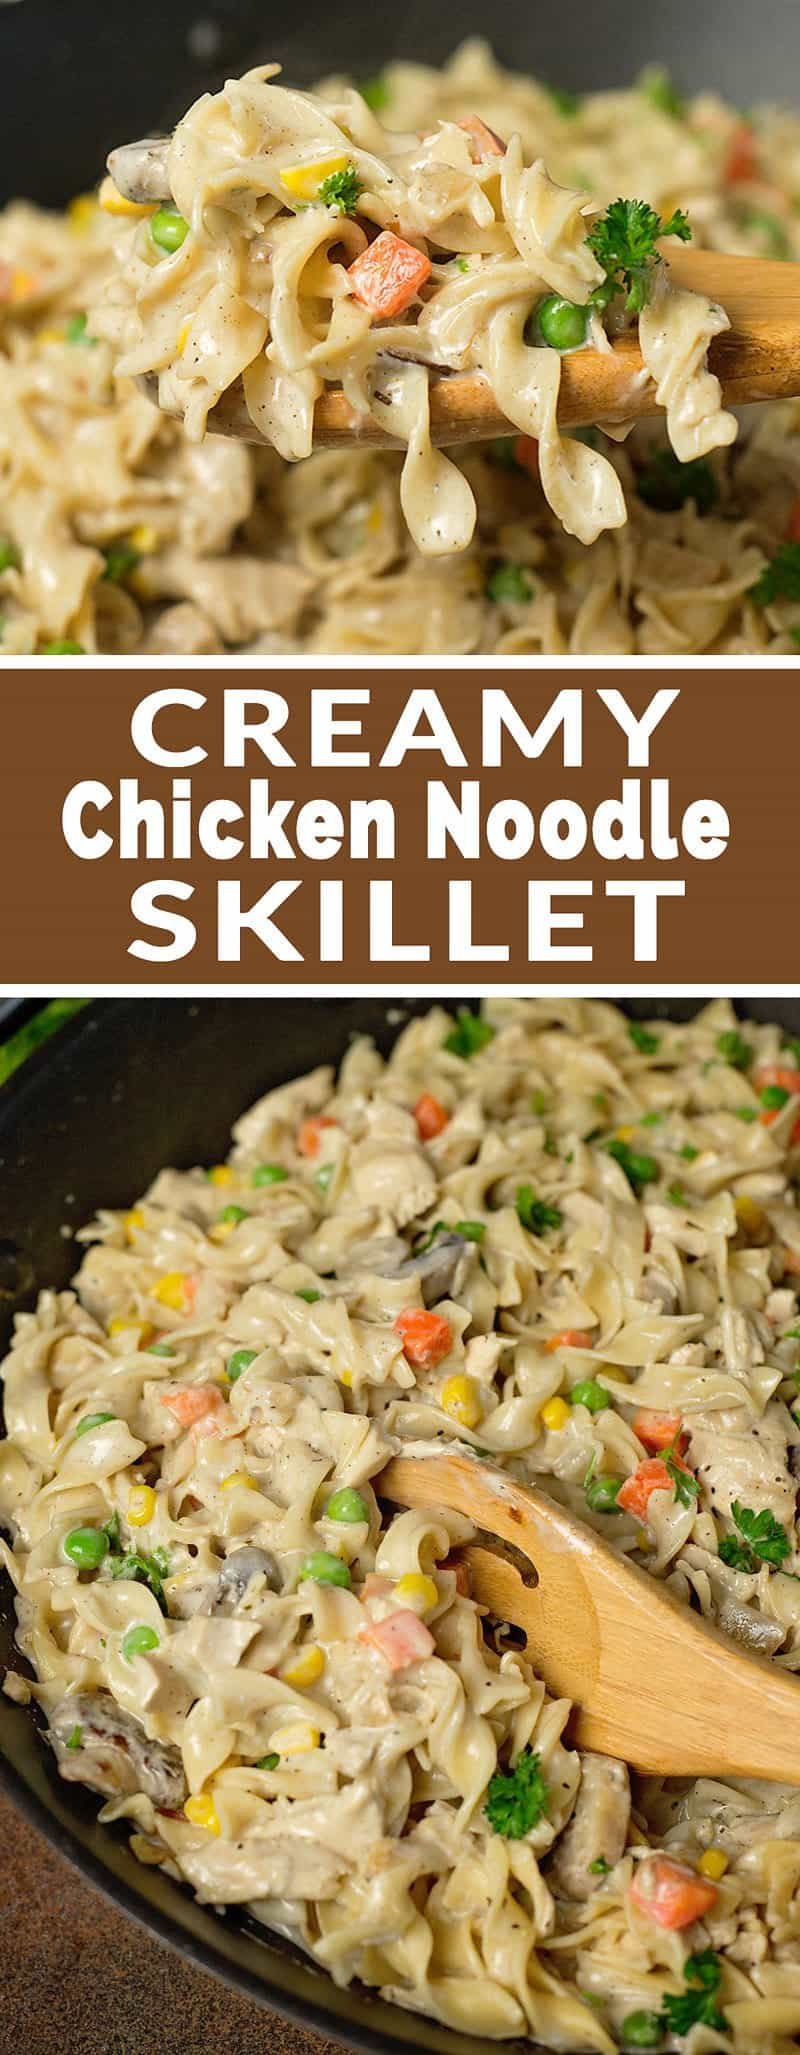 Creamy Chicken Noodle Skillet Recipe - tastes almost like chicken pot pie, but without all the work! (20 minute meal) #20minuterecipe